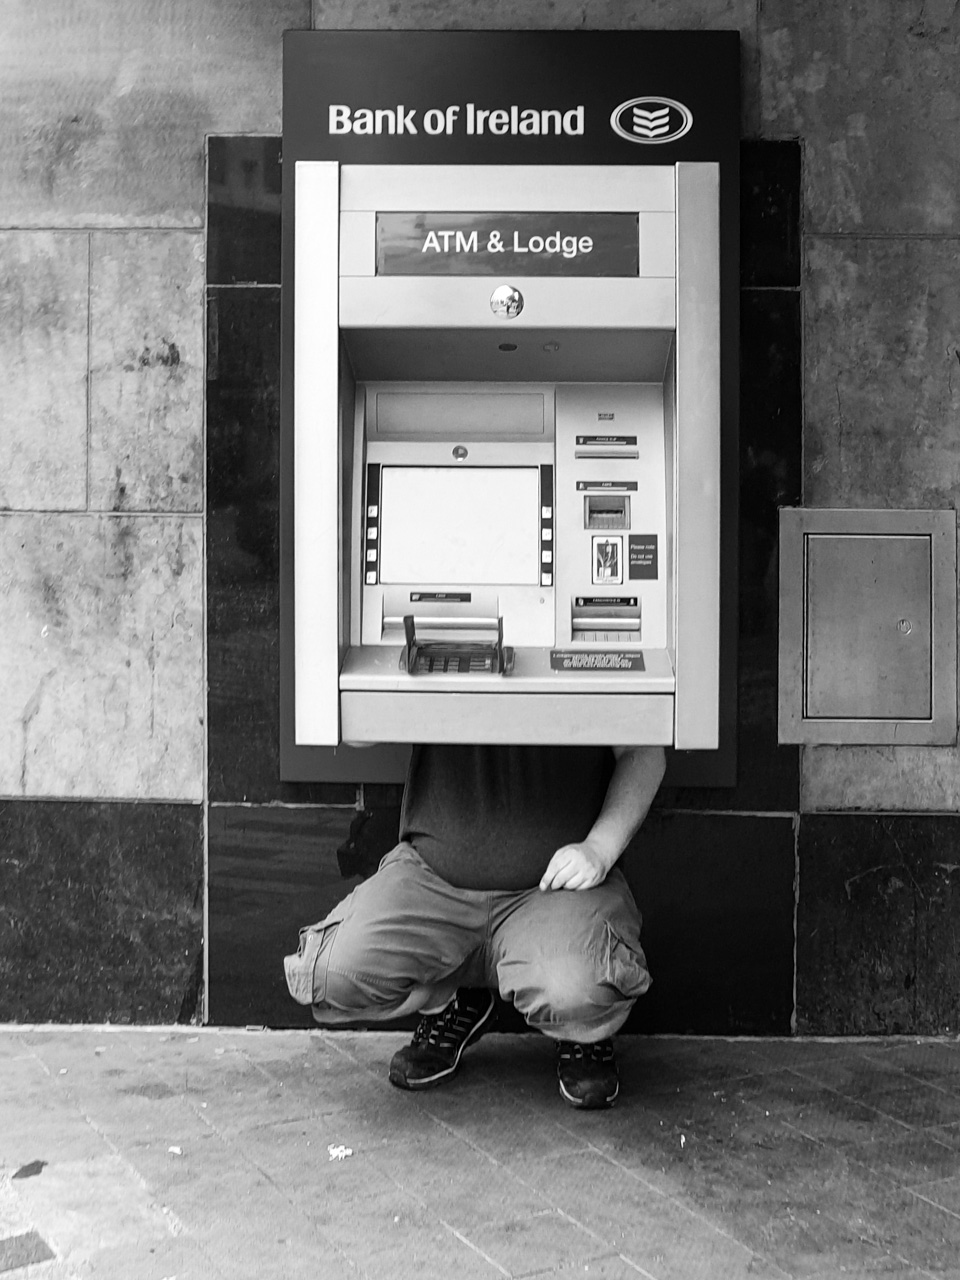 The ATM has Legs